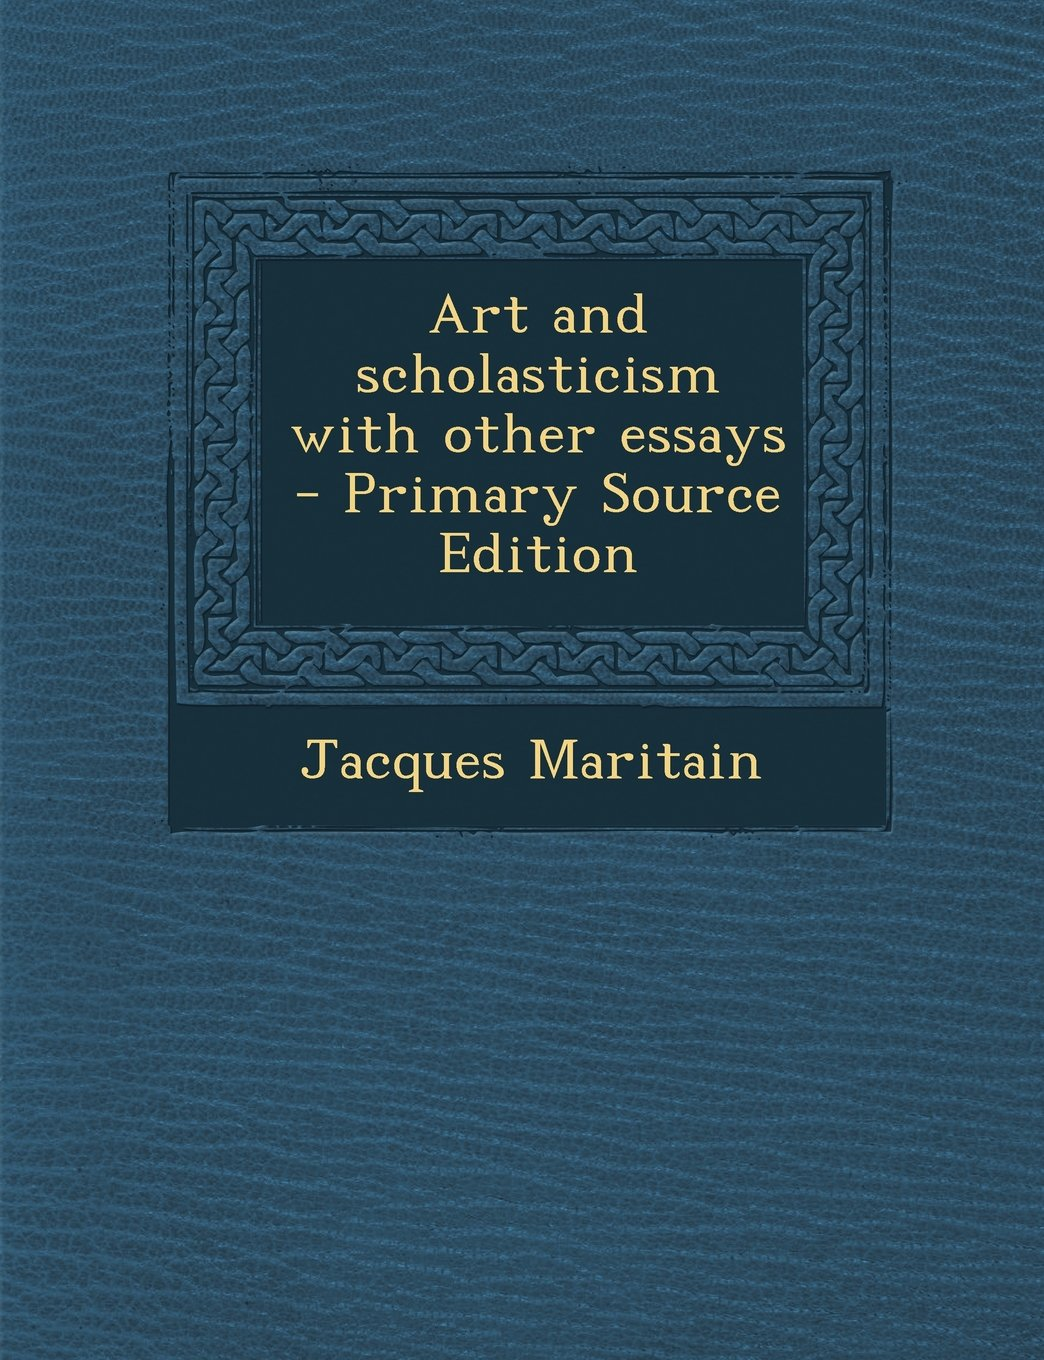 004 Art And Scholasticism With Other Essays Essay Example Impressive Full